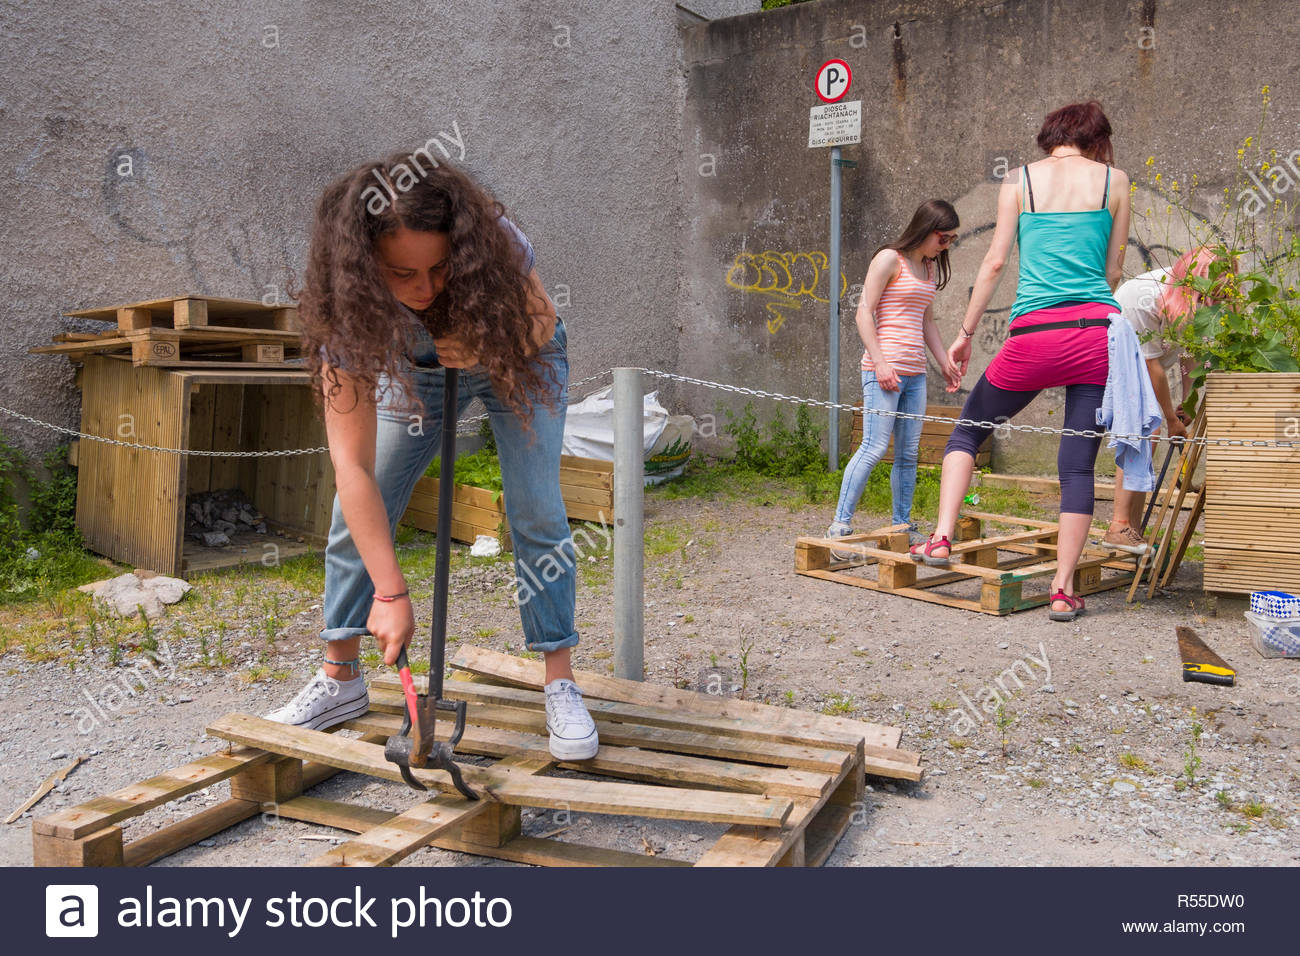 Woman using a hammer and pry bar to disassemble a wood pallet, Courtney's Avenue, Centre, Cork, County Cork, Munster, Ireland - Stock Image